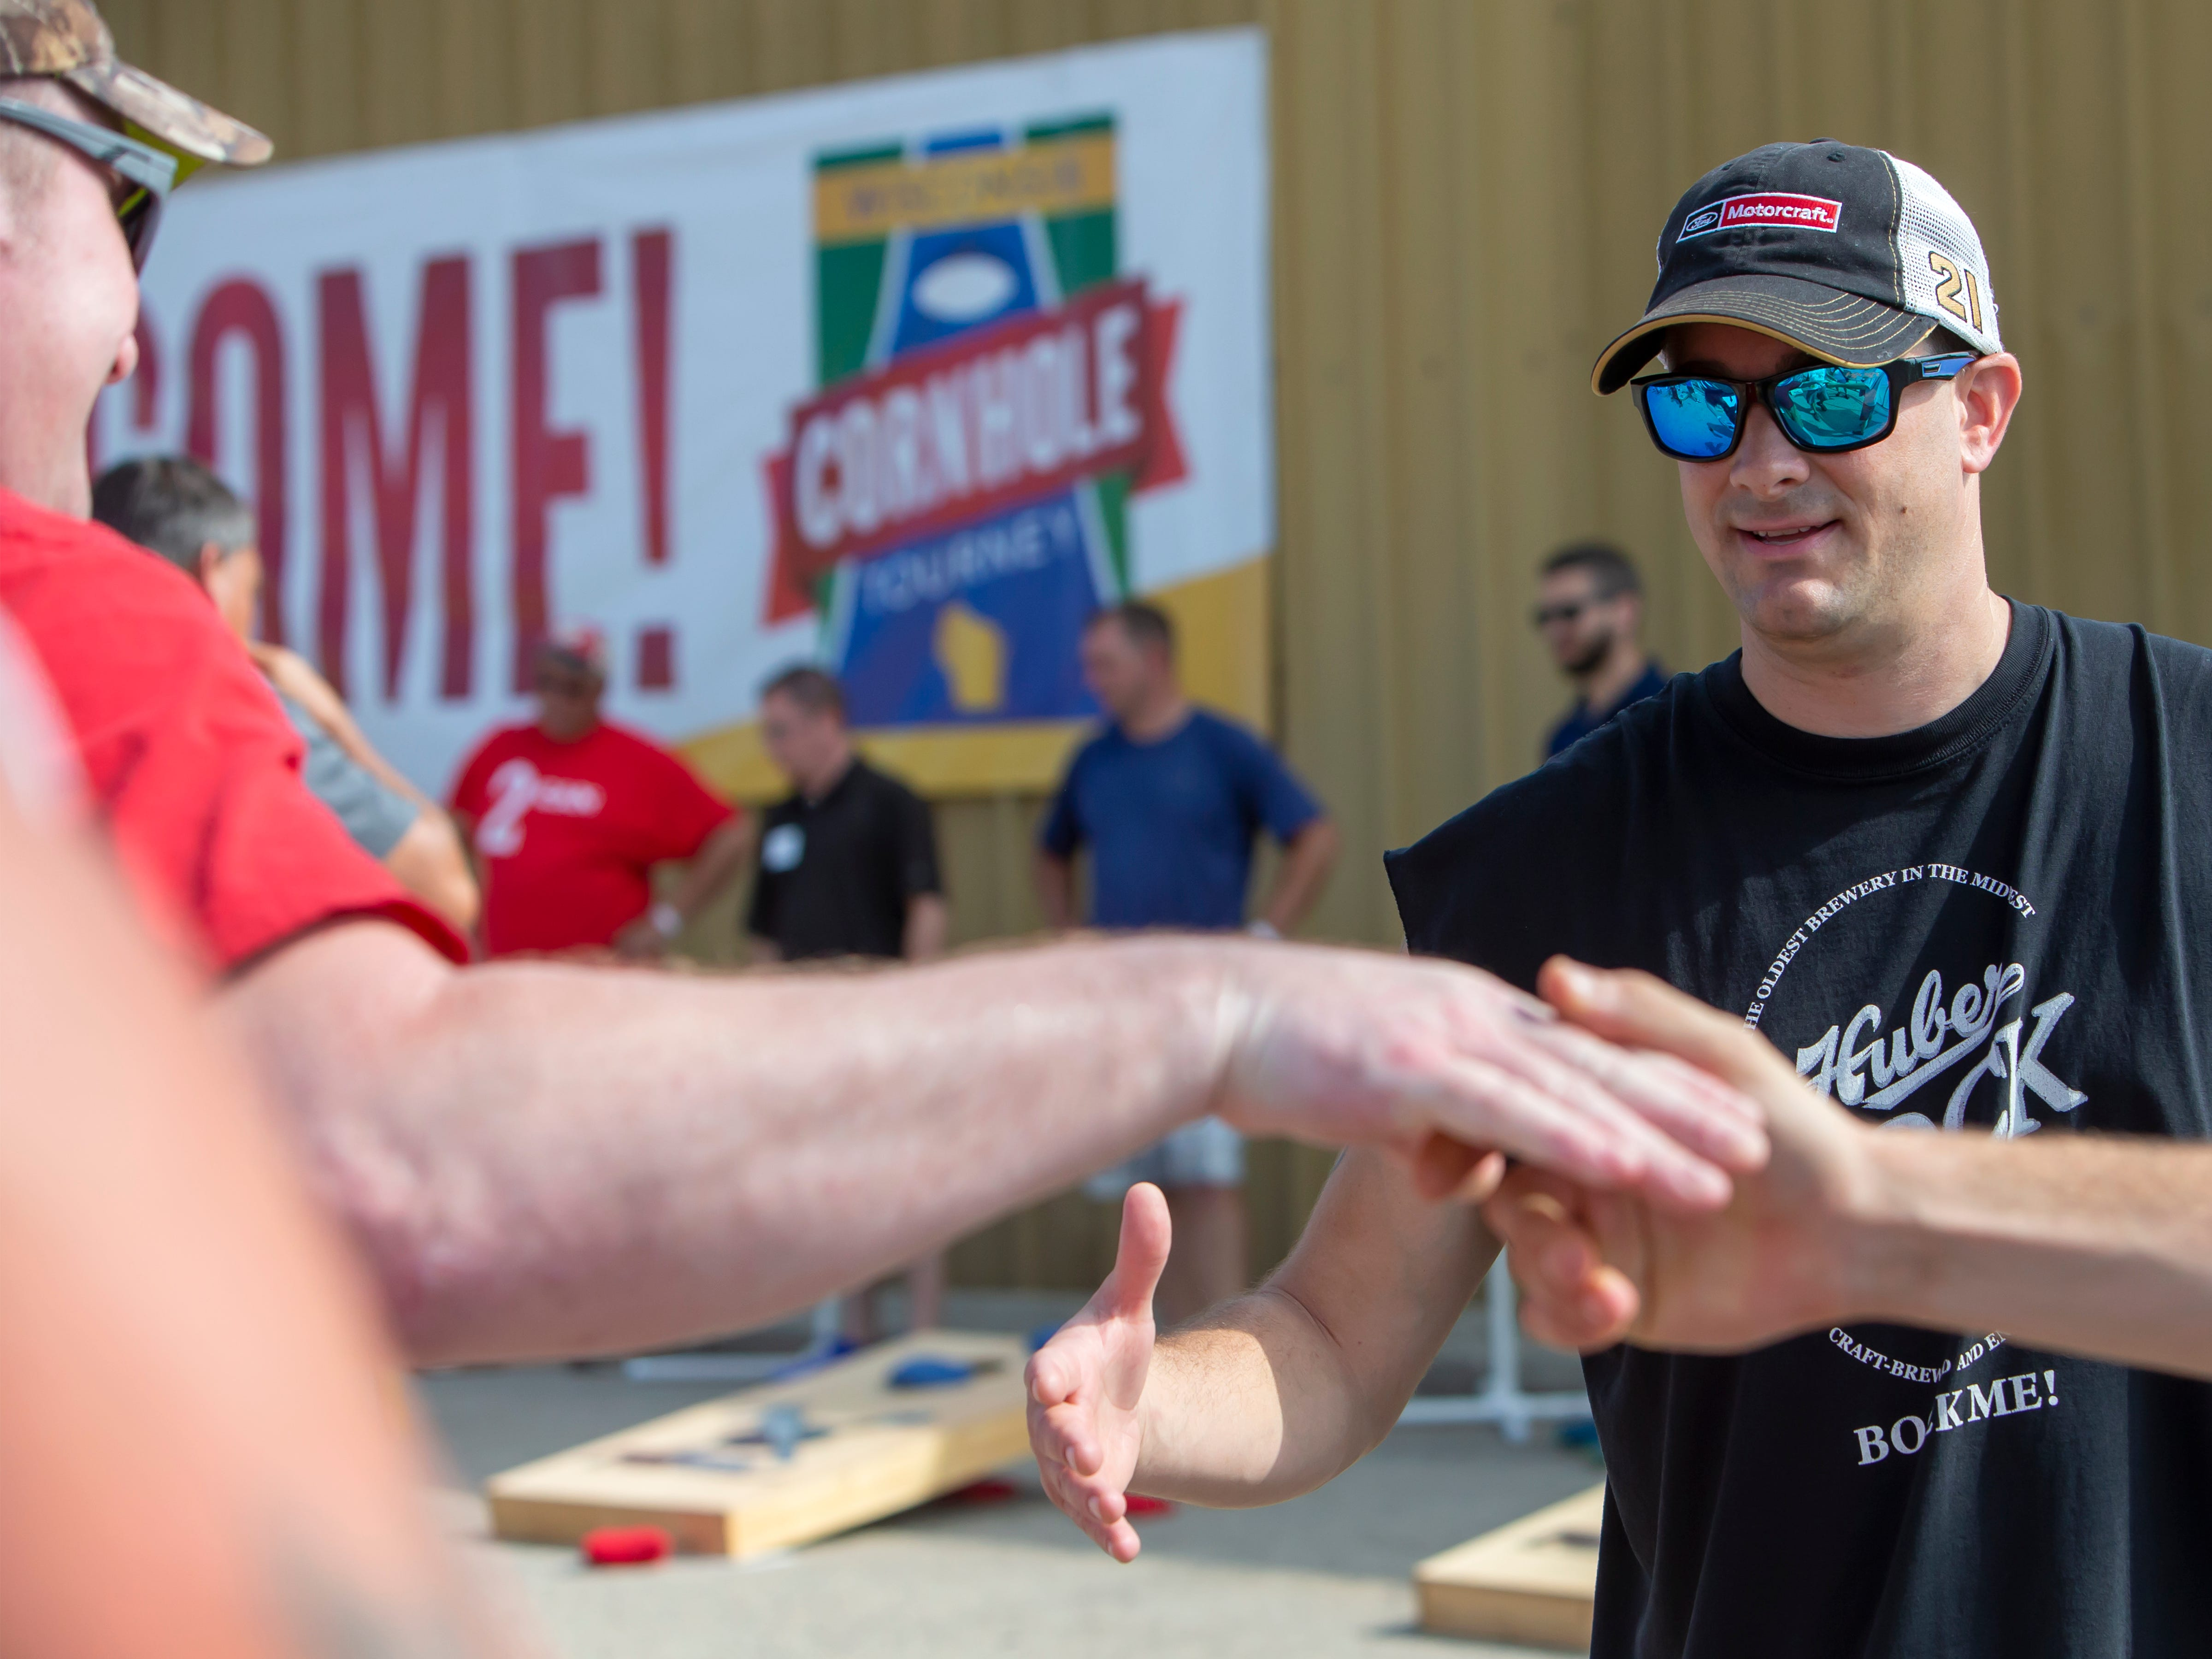 Mike Huber holds out his hand for an end-game handshake while competing in the Wisconsin Cornhole Tourney at Dockside Tavern in Oshkosh on Saturday, Sept. 15, 2018.